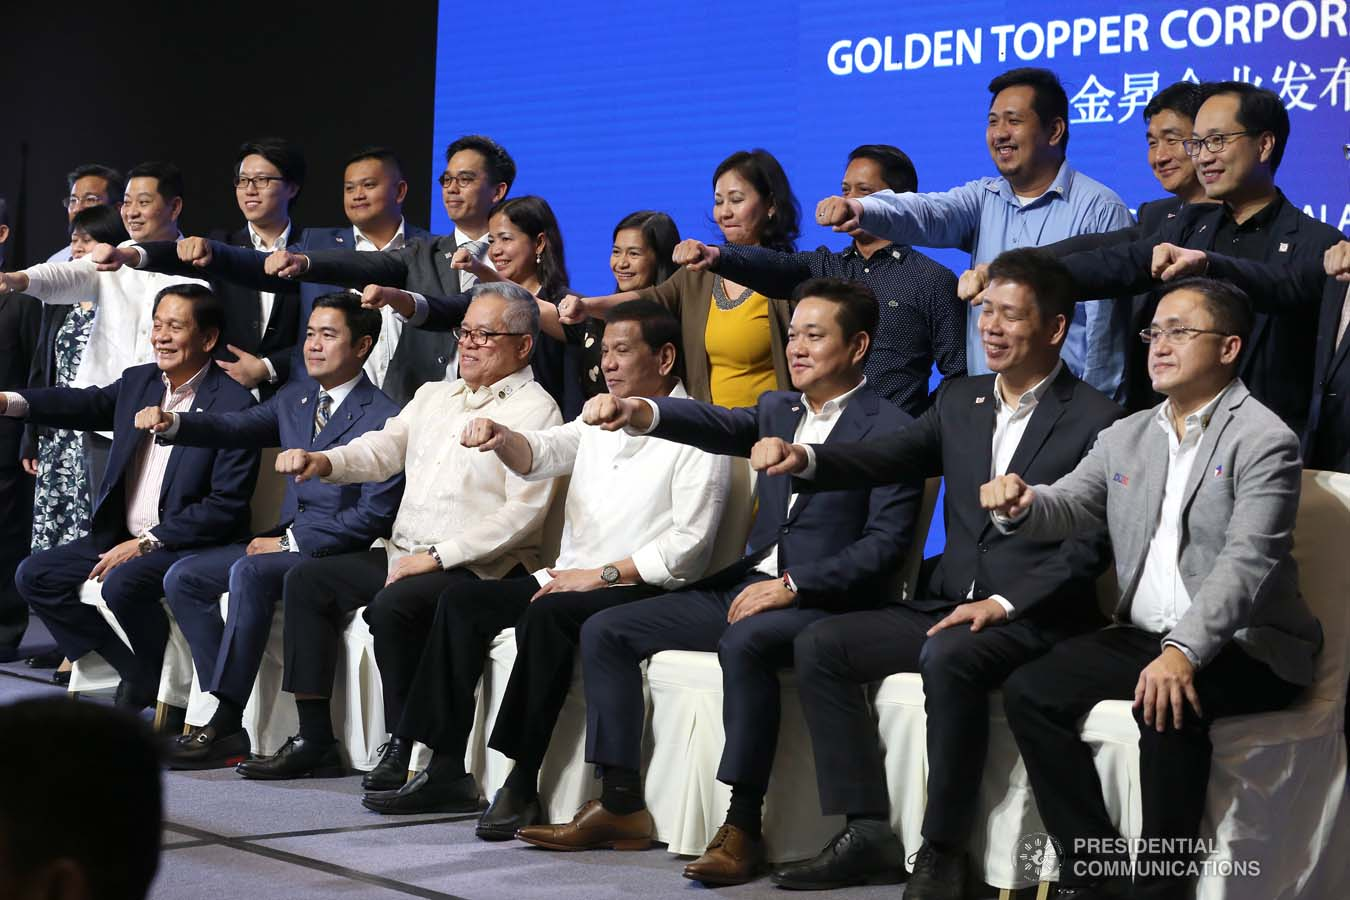 President Rodrigo Roa Duterte flashes his signature pose with the officials of the Golden Topper Group Inc. and other distinguished guests during the Golden Topper Corporate Launch at the Aseana Business Park in Parañaque City on September 25, 2019. ALBERT ALCAIN/PRESIDENTIAL PHOTO